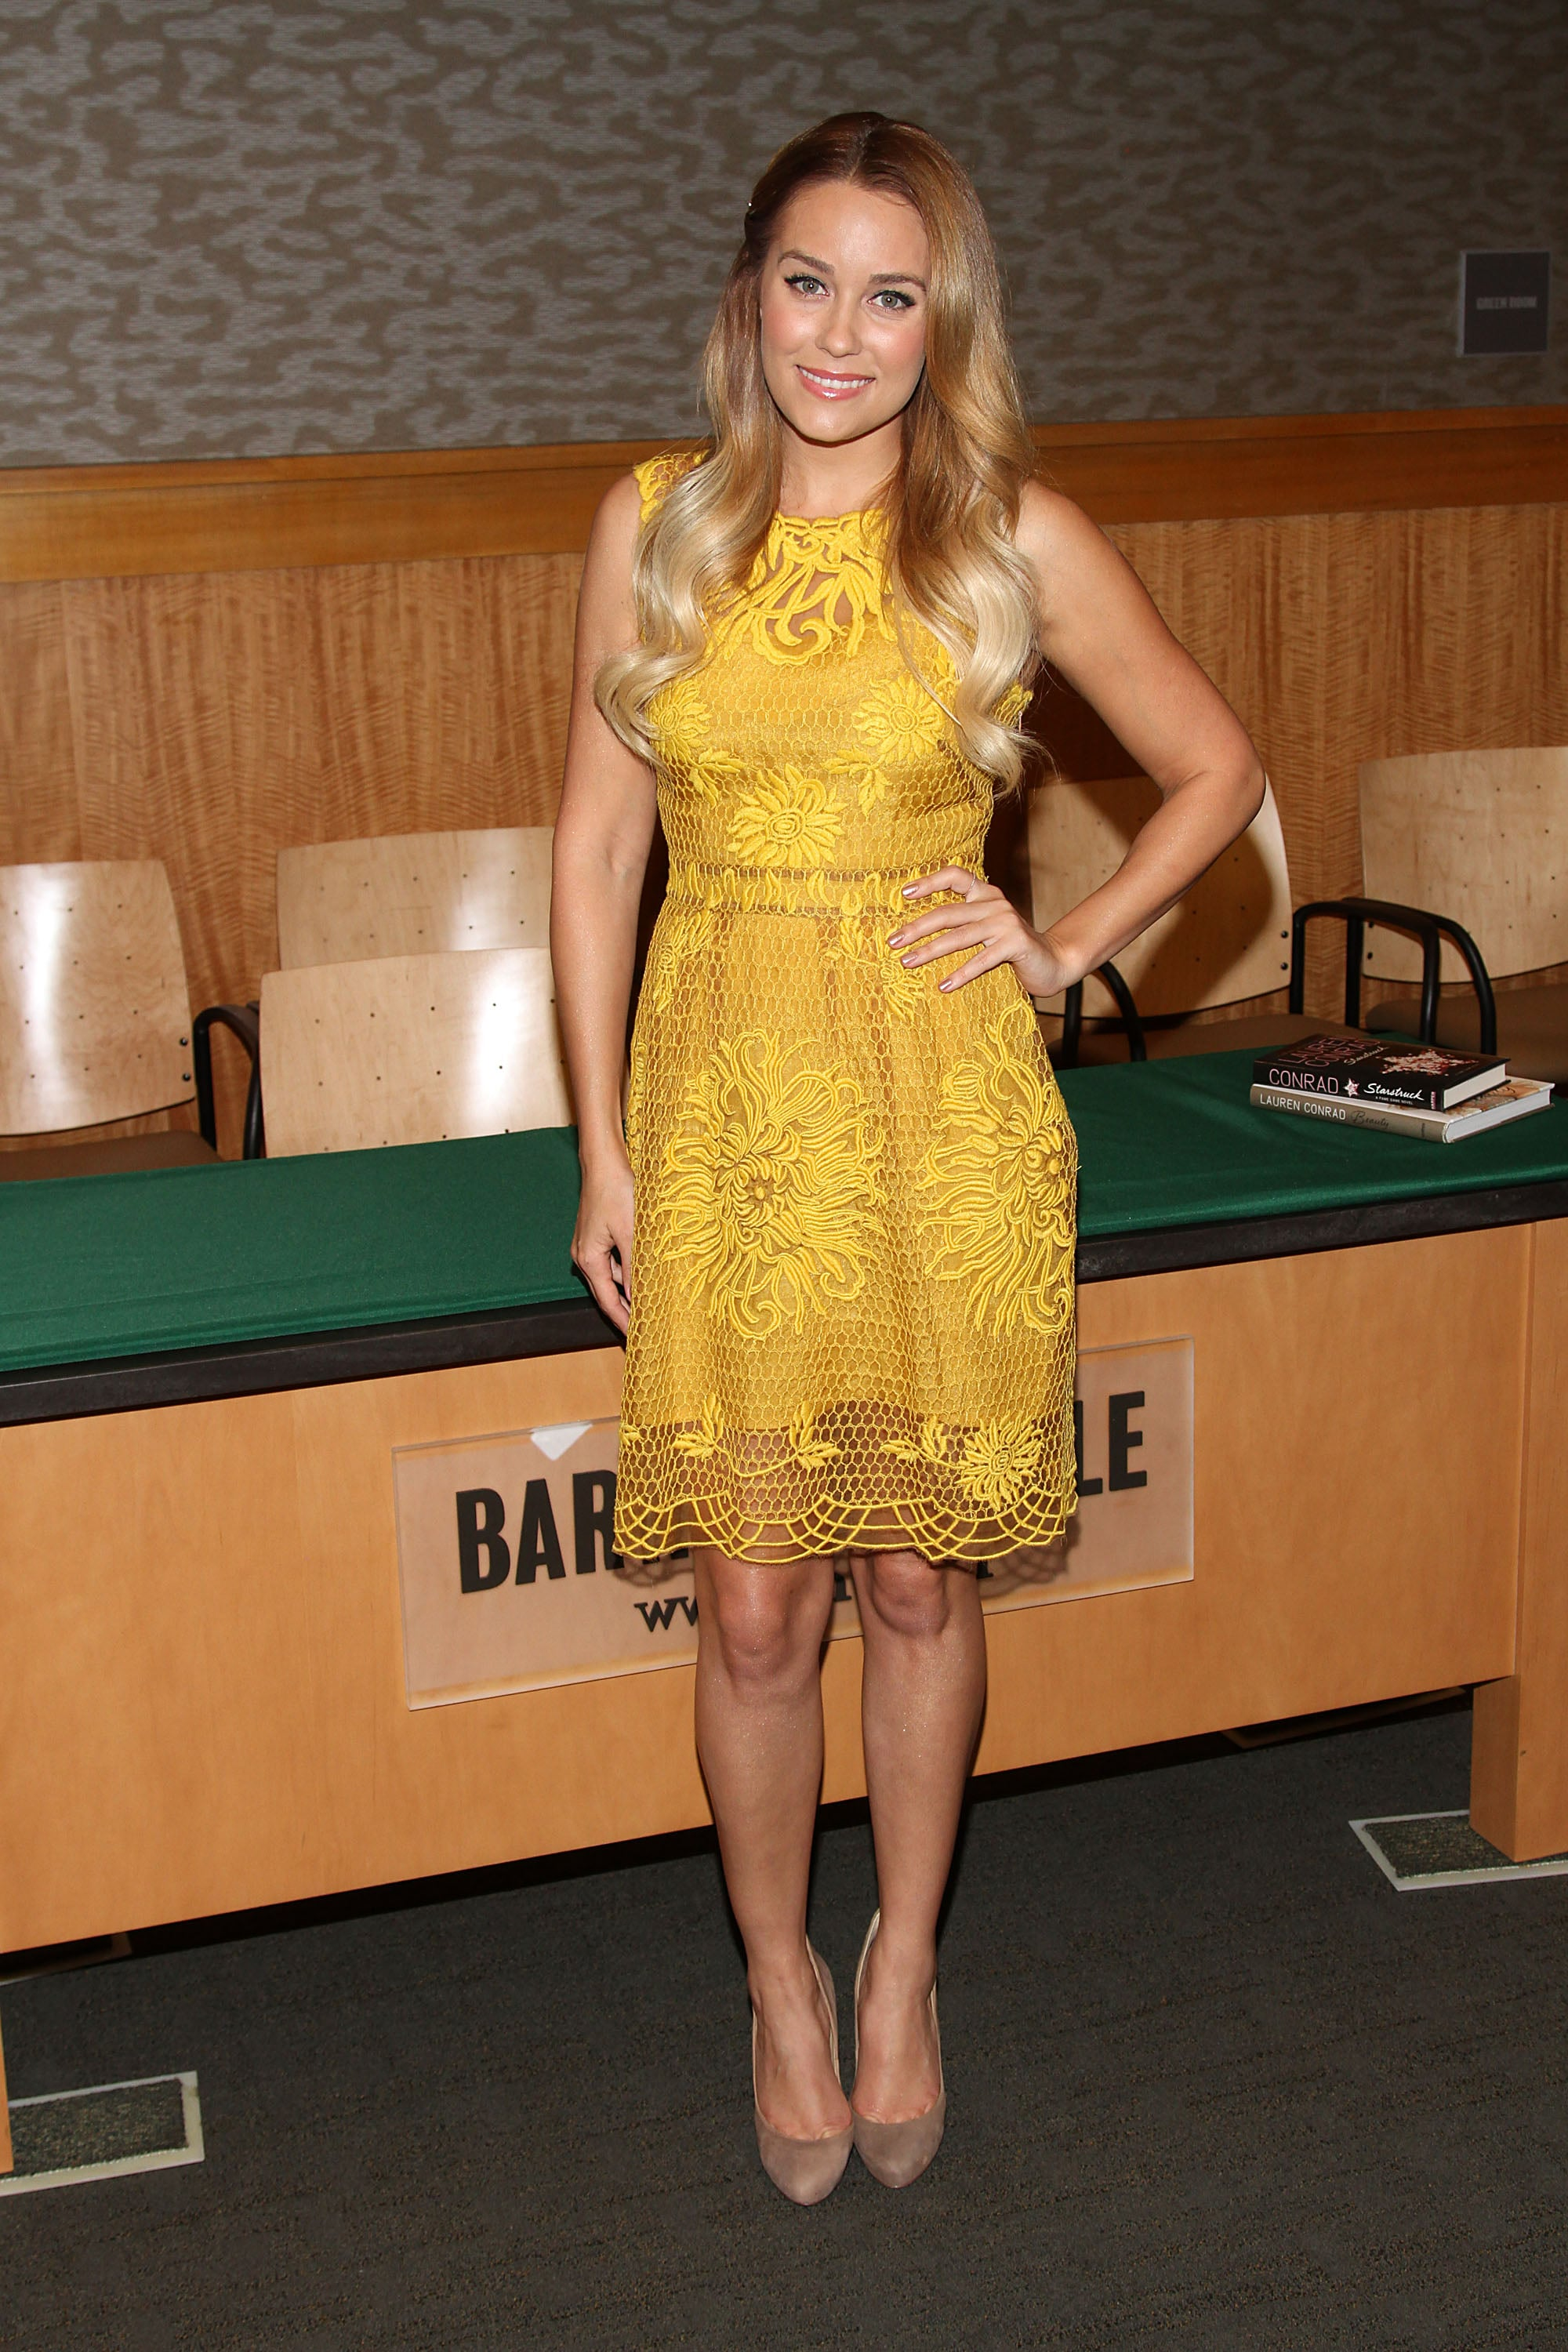 Lauren wore a bright yellow Yoana Baraschi party dress for a book signing at Barnes & Noble in 2012. Lesson from Lauren: no need to over-accessorize a gorgeous dress.